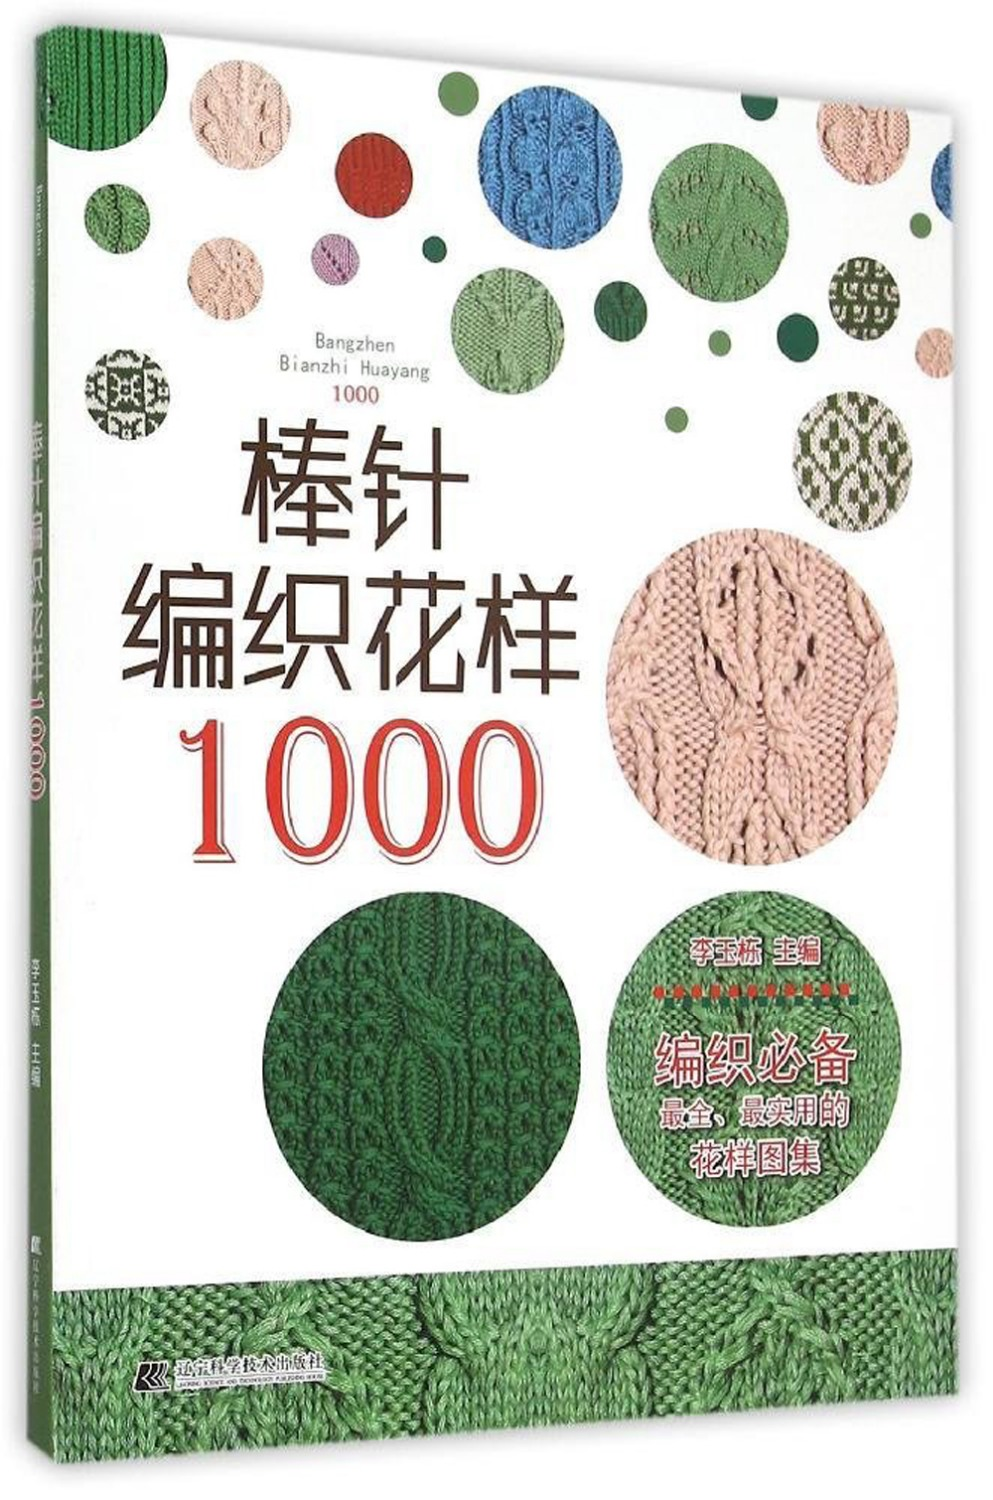 Chinese Knitting Pattern Sweater Book With 1000 Different Pattern Novice Zero Basics Learning Needle Knitting Tutorial Books химия в схемах и таблицах